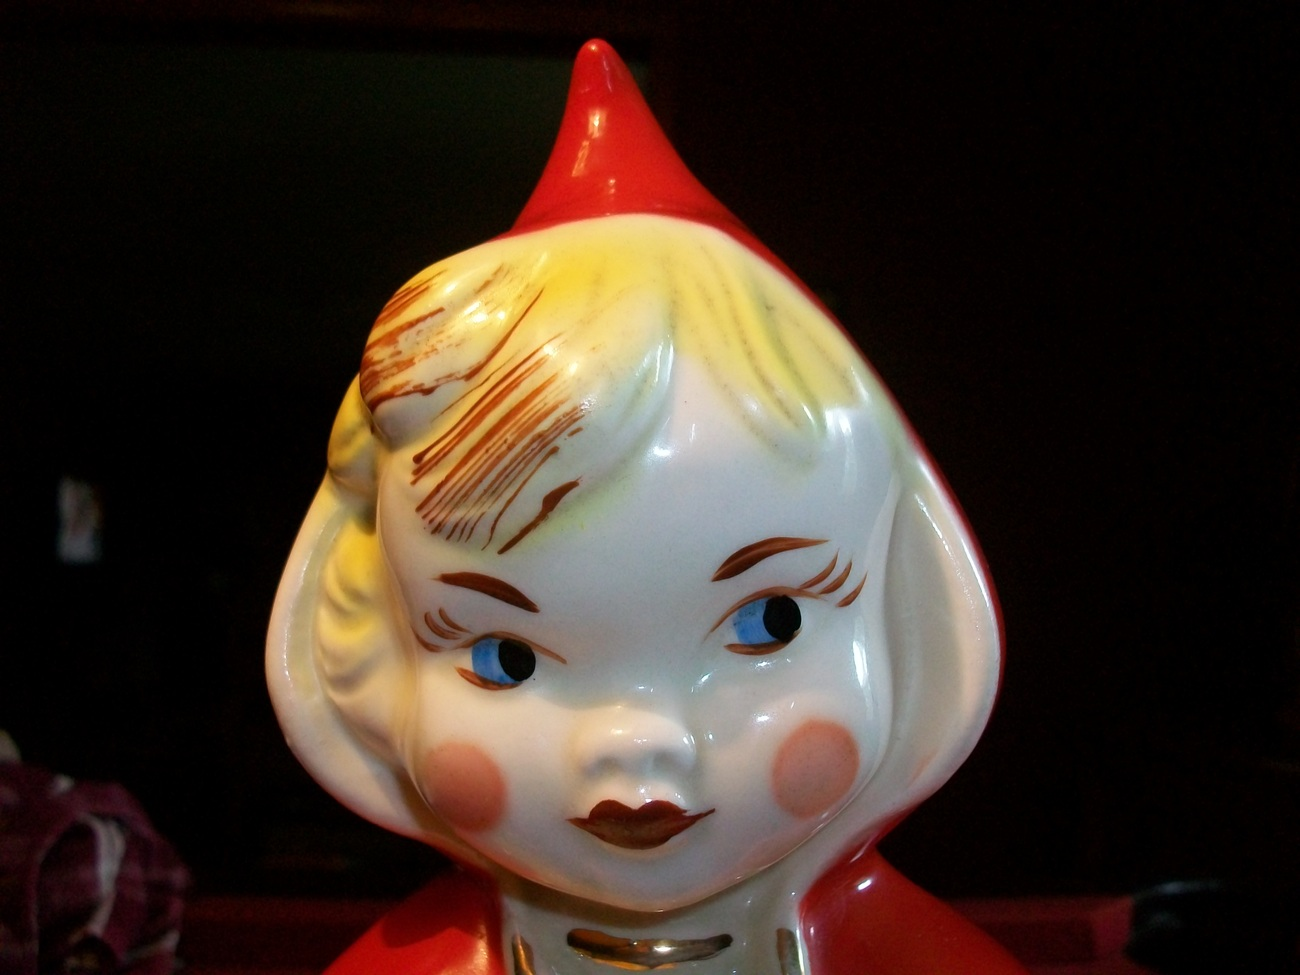 Vintage Regal Little Red Riding Hood Cookie Jar w/ Poinsettias-The Real Deal!!